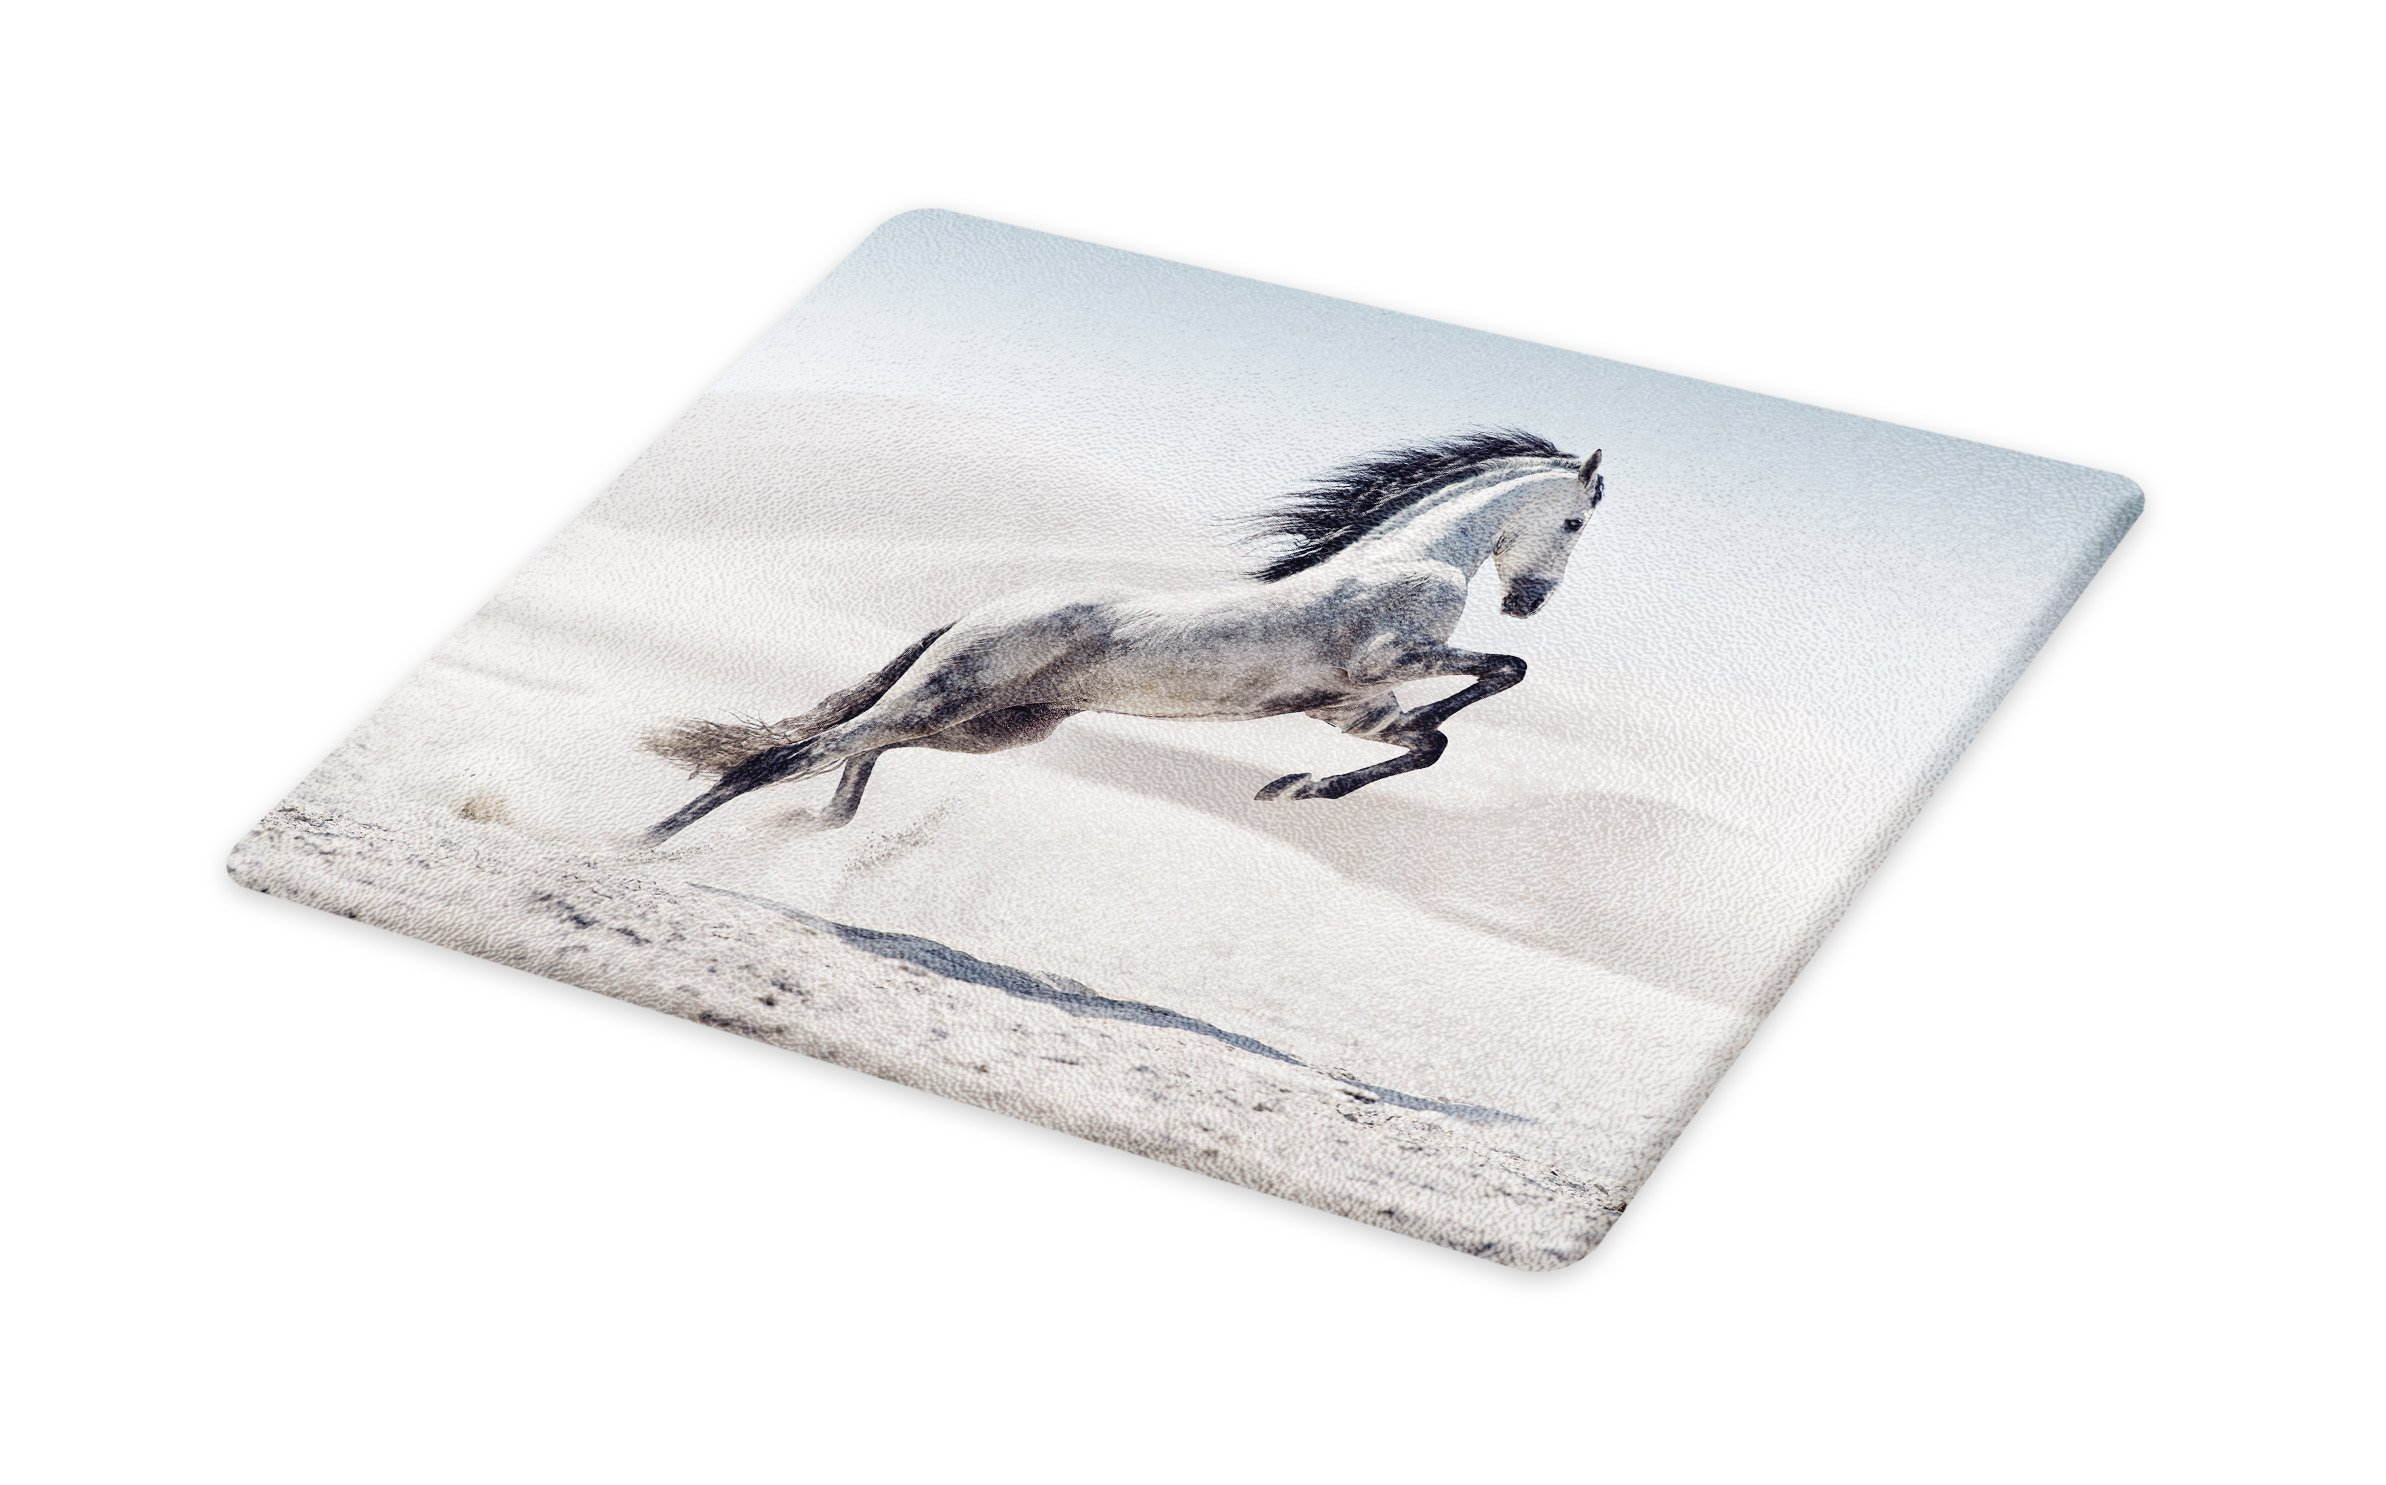 Lunarable Horses Cutting Board, Silver Pony Horse Galloping Over Motion Majestic Wild Animal Power and Grace Theme, Decorative Tempered Glass Cutting and Serving Board, Large Size, Beige Black